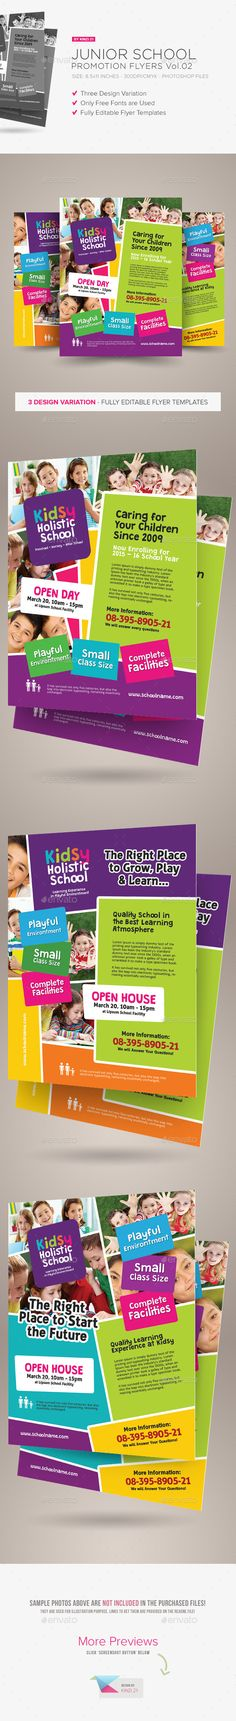 Junior School Promotion Flyers Vol.02 - Corporate Flyers